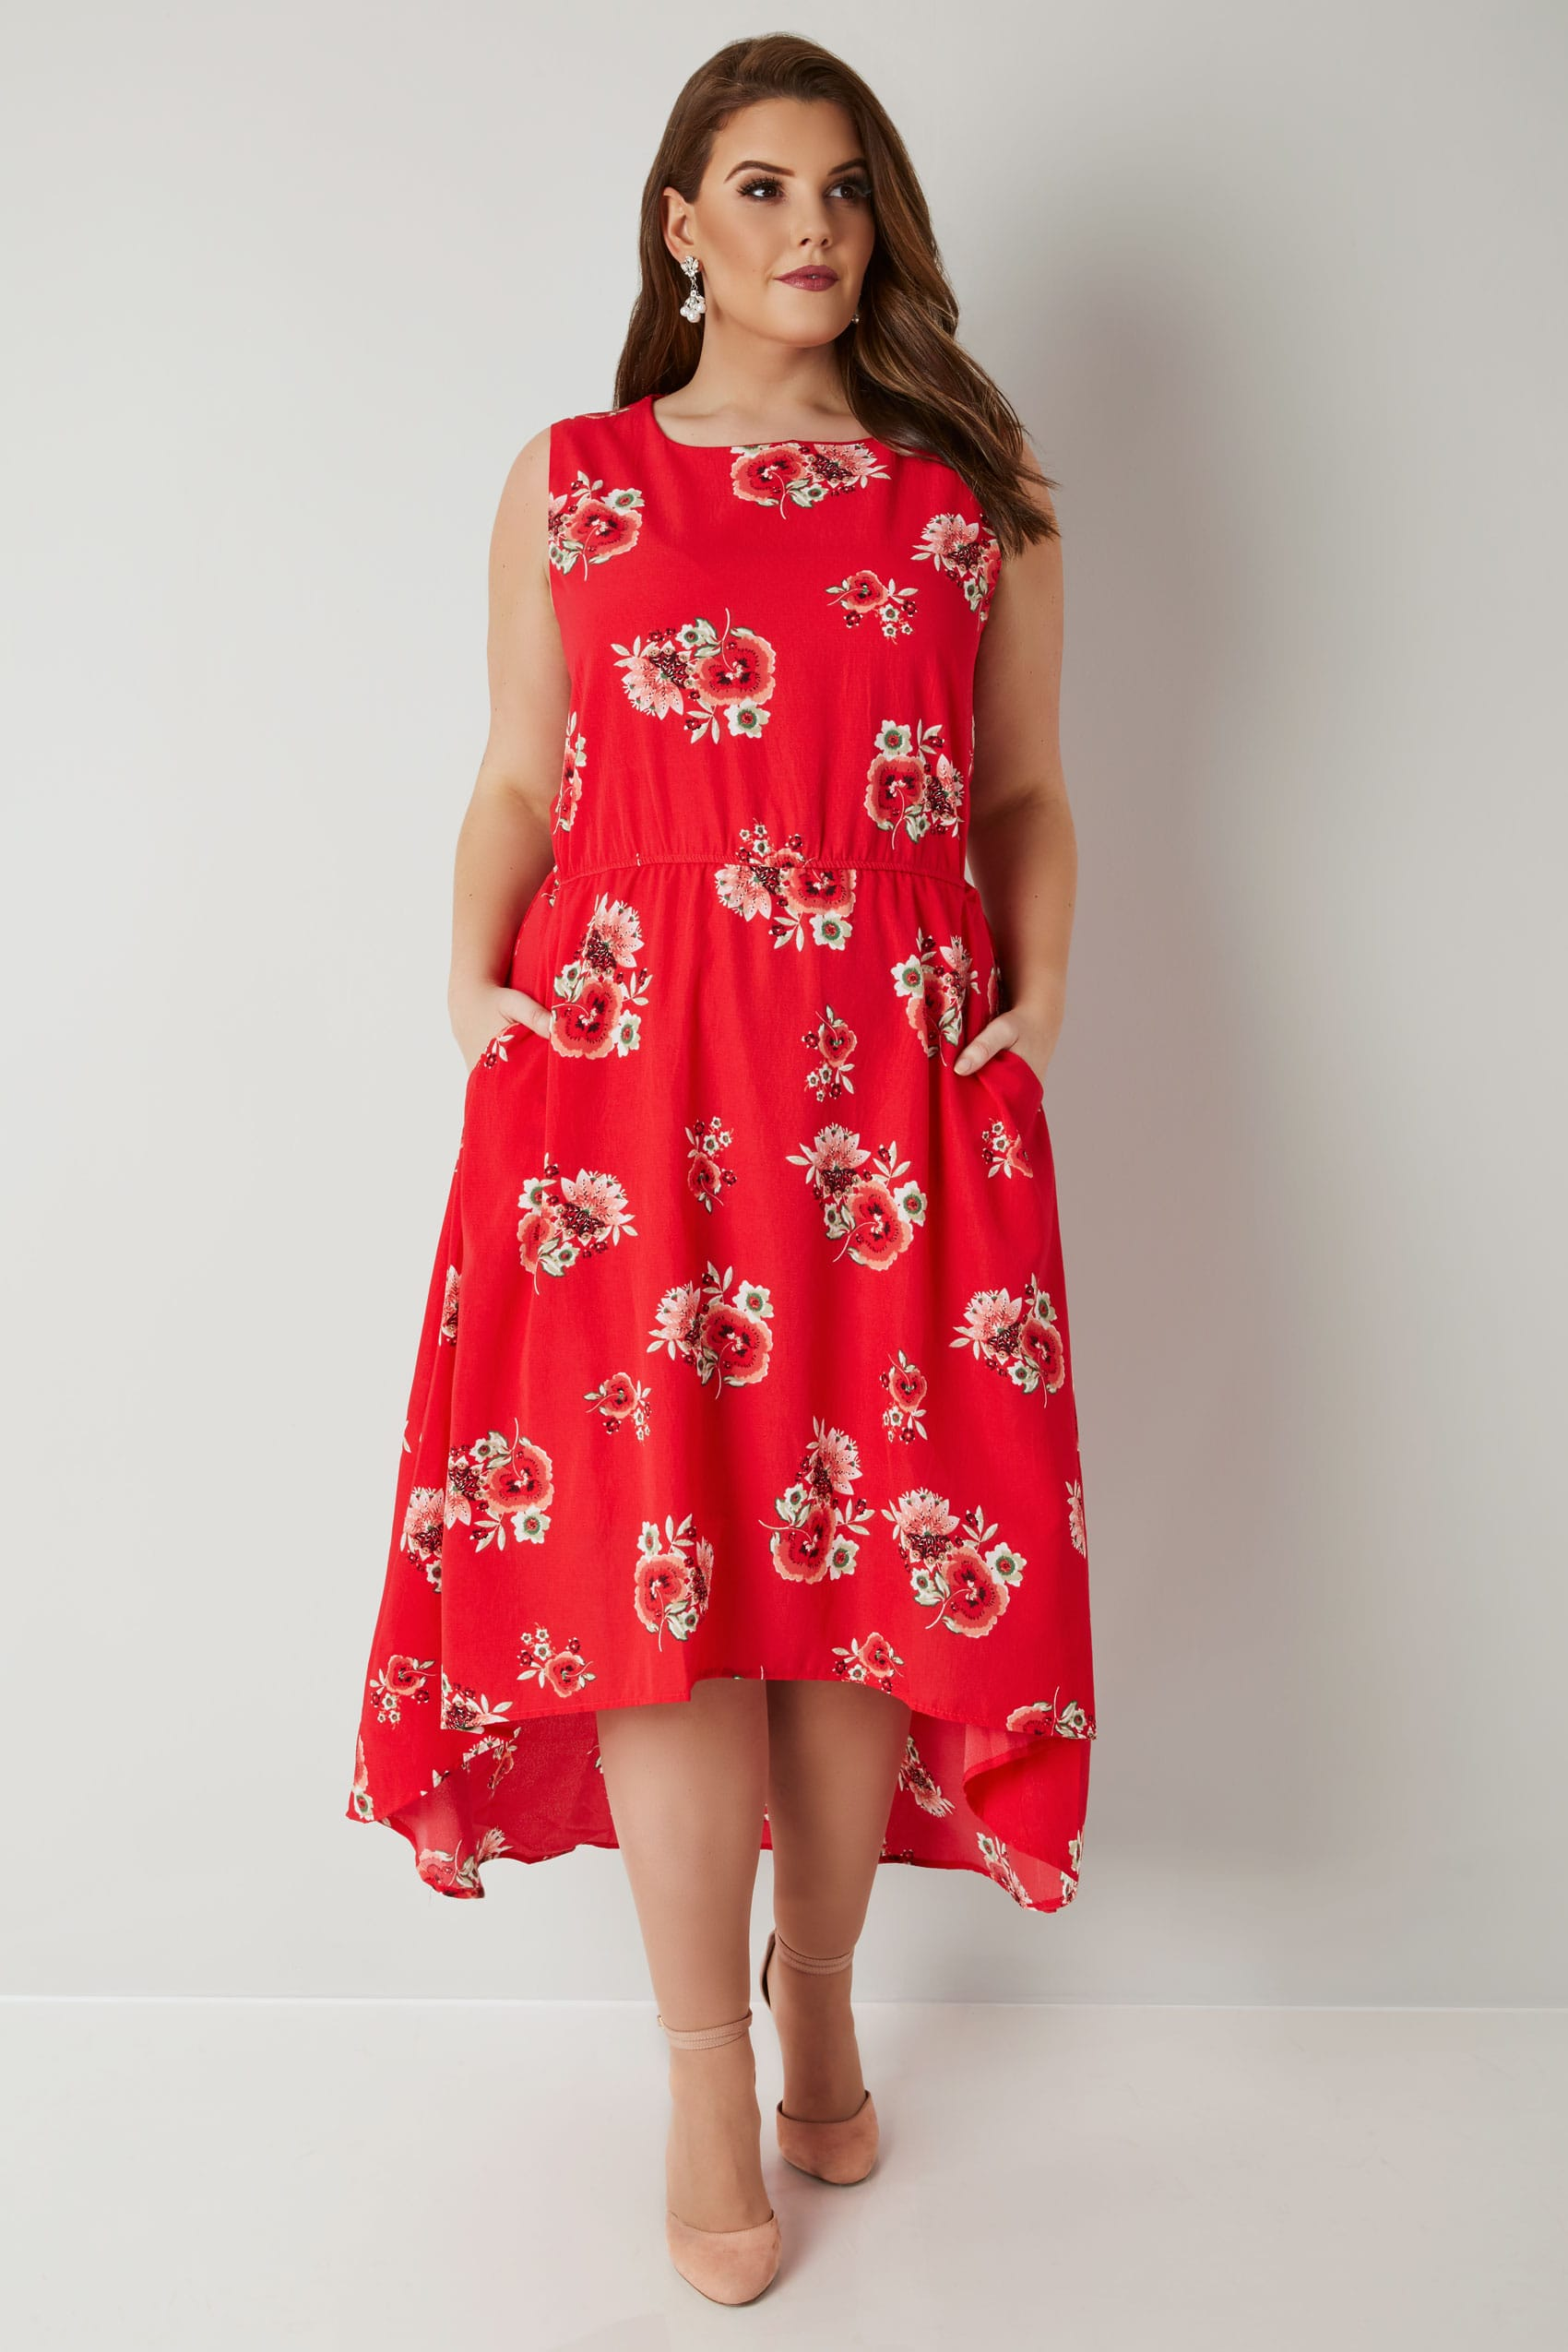 78e57cba6921 BLUE VANILLA CURVE Red Floral Print High Low Dress